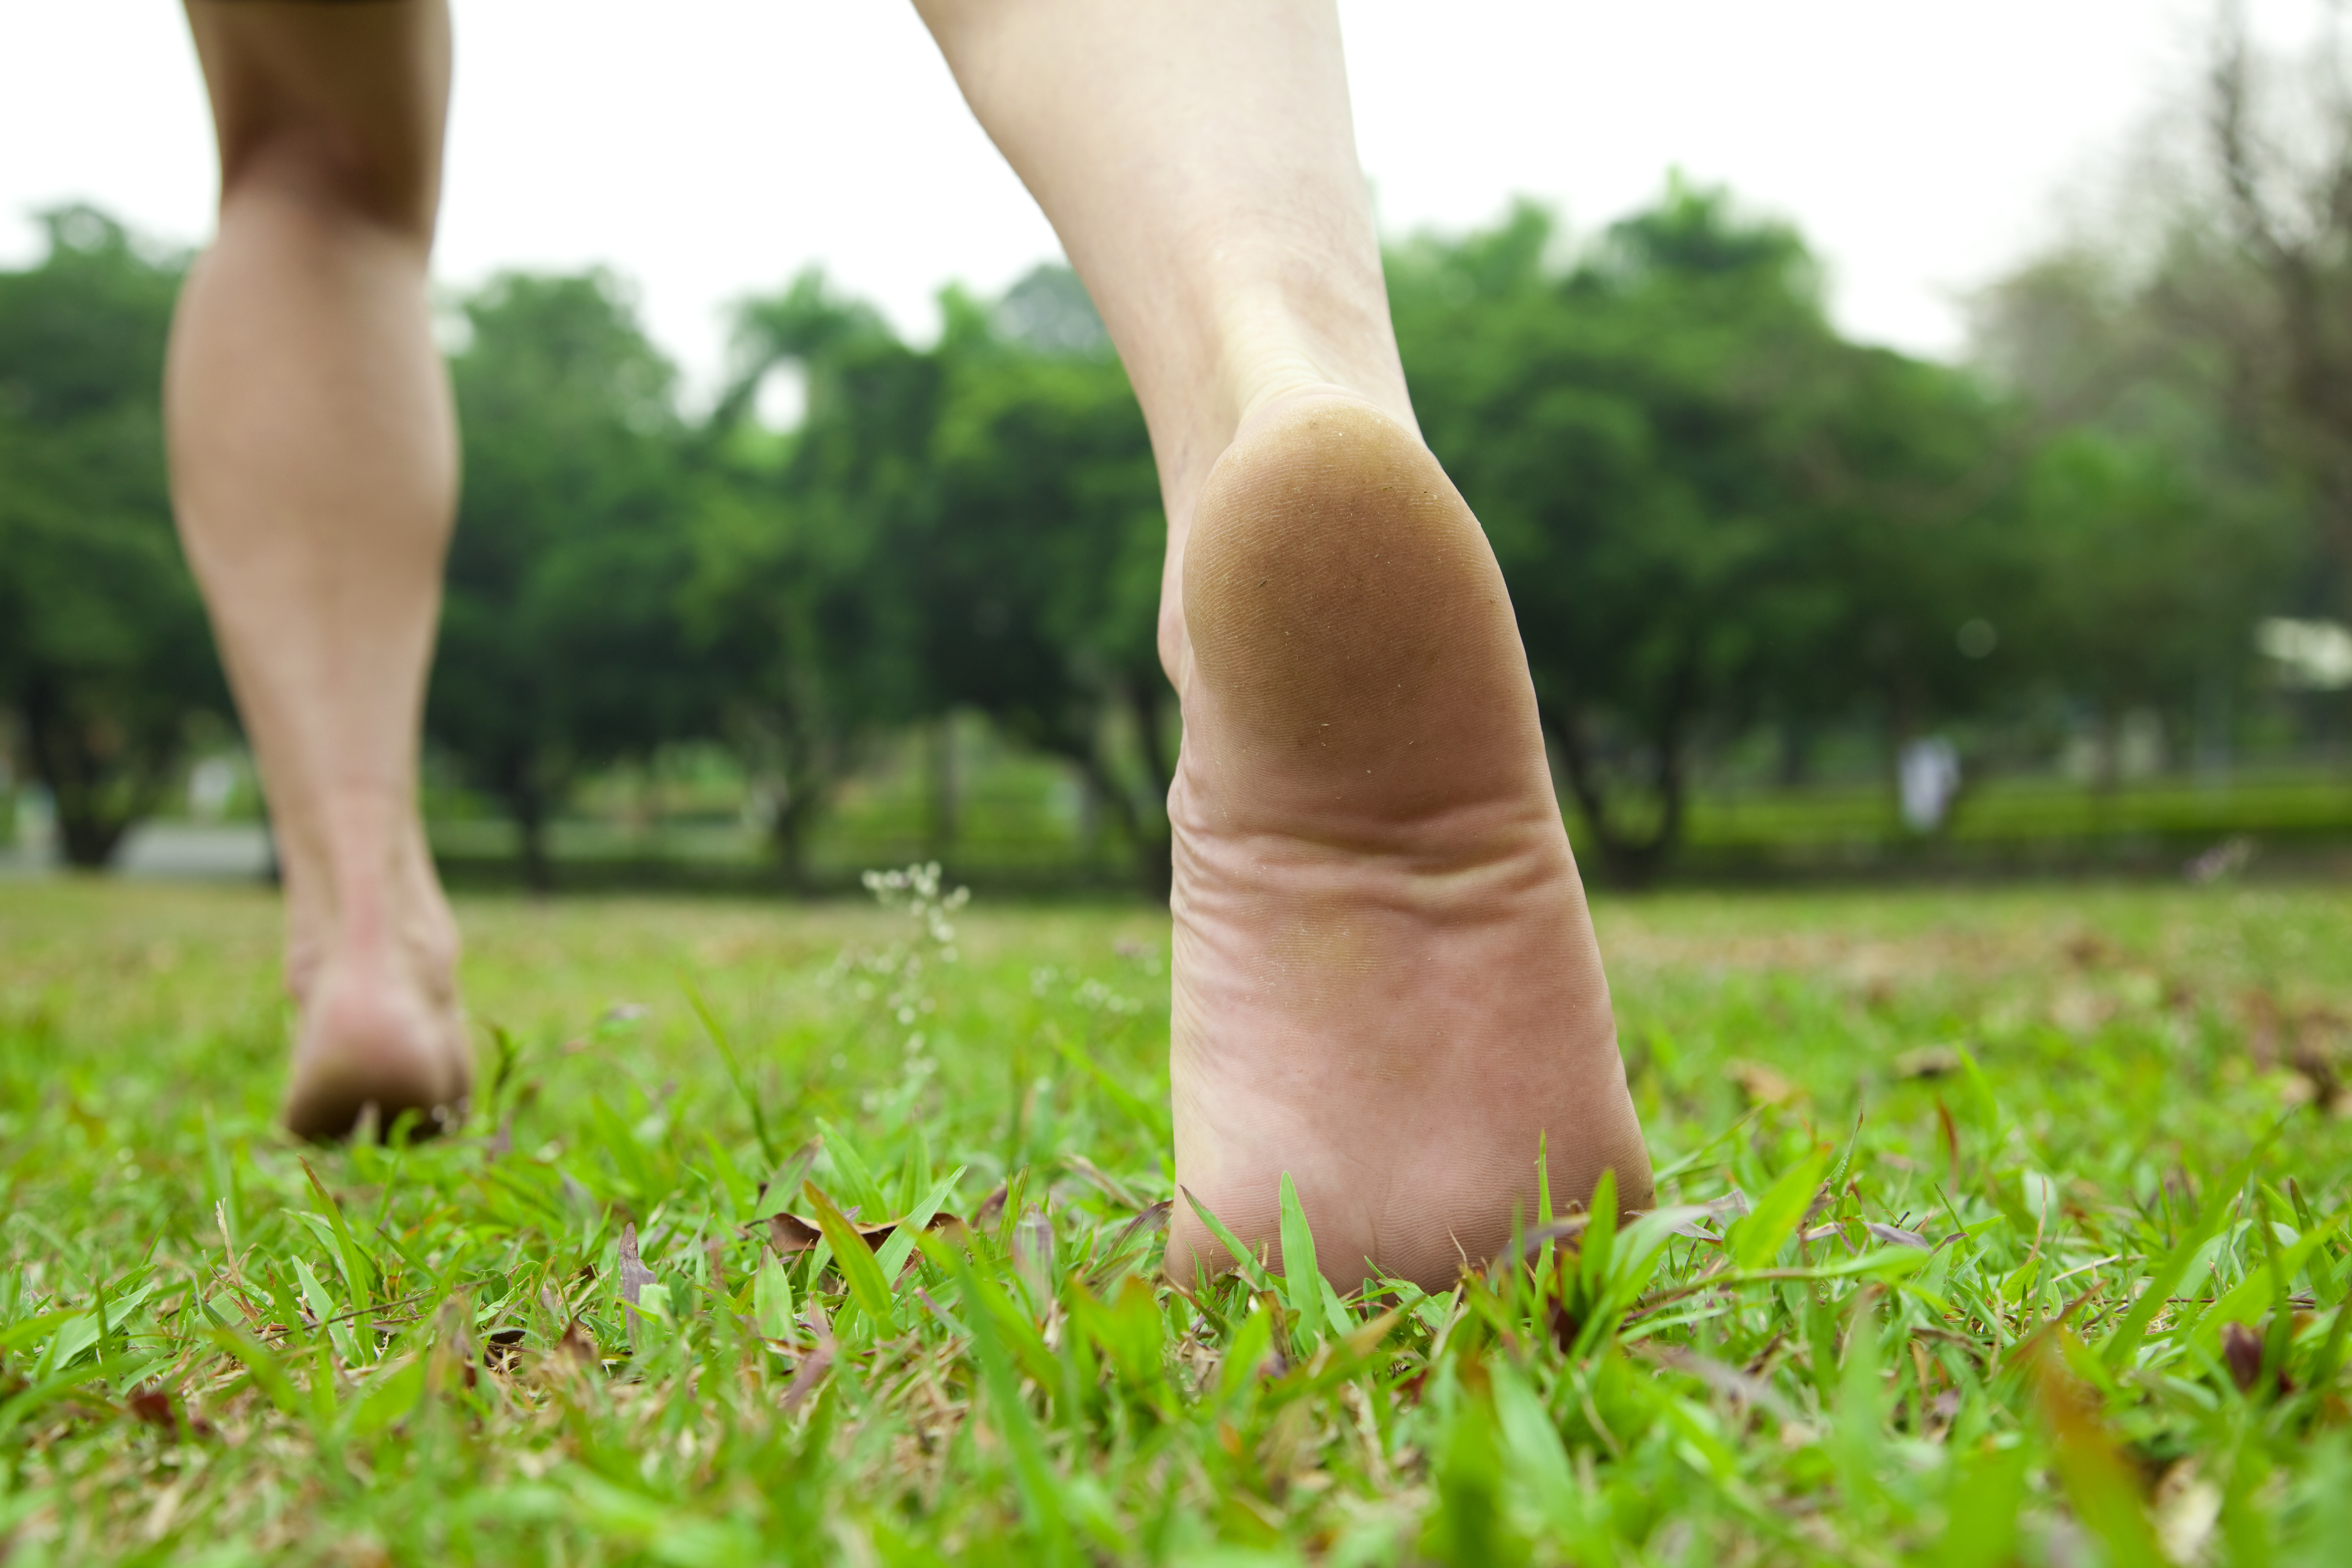 Going Barefoot Could Prevent Common Injuries